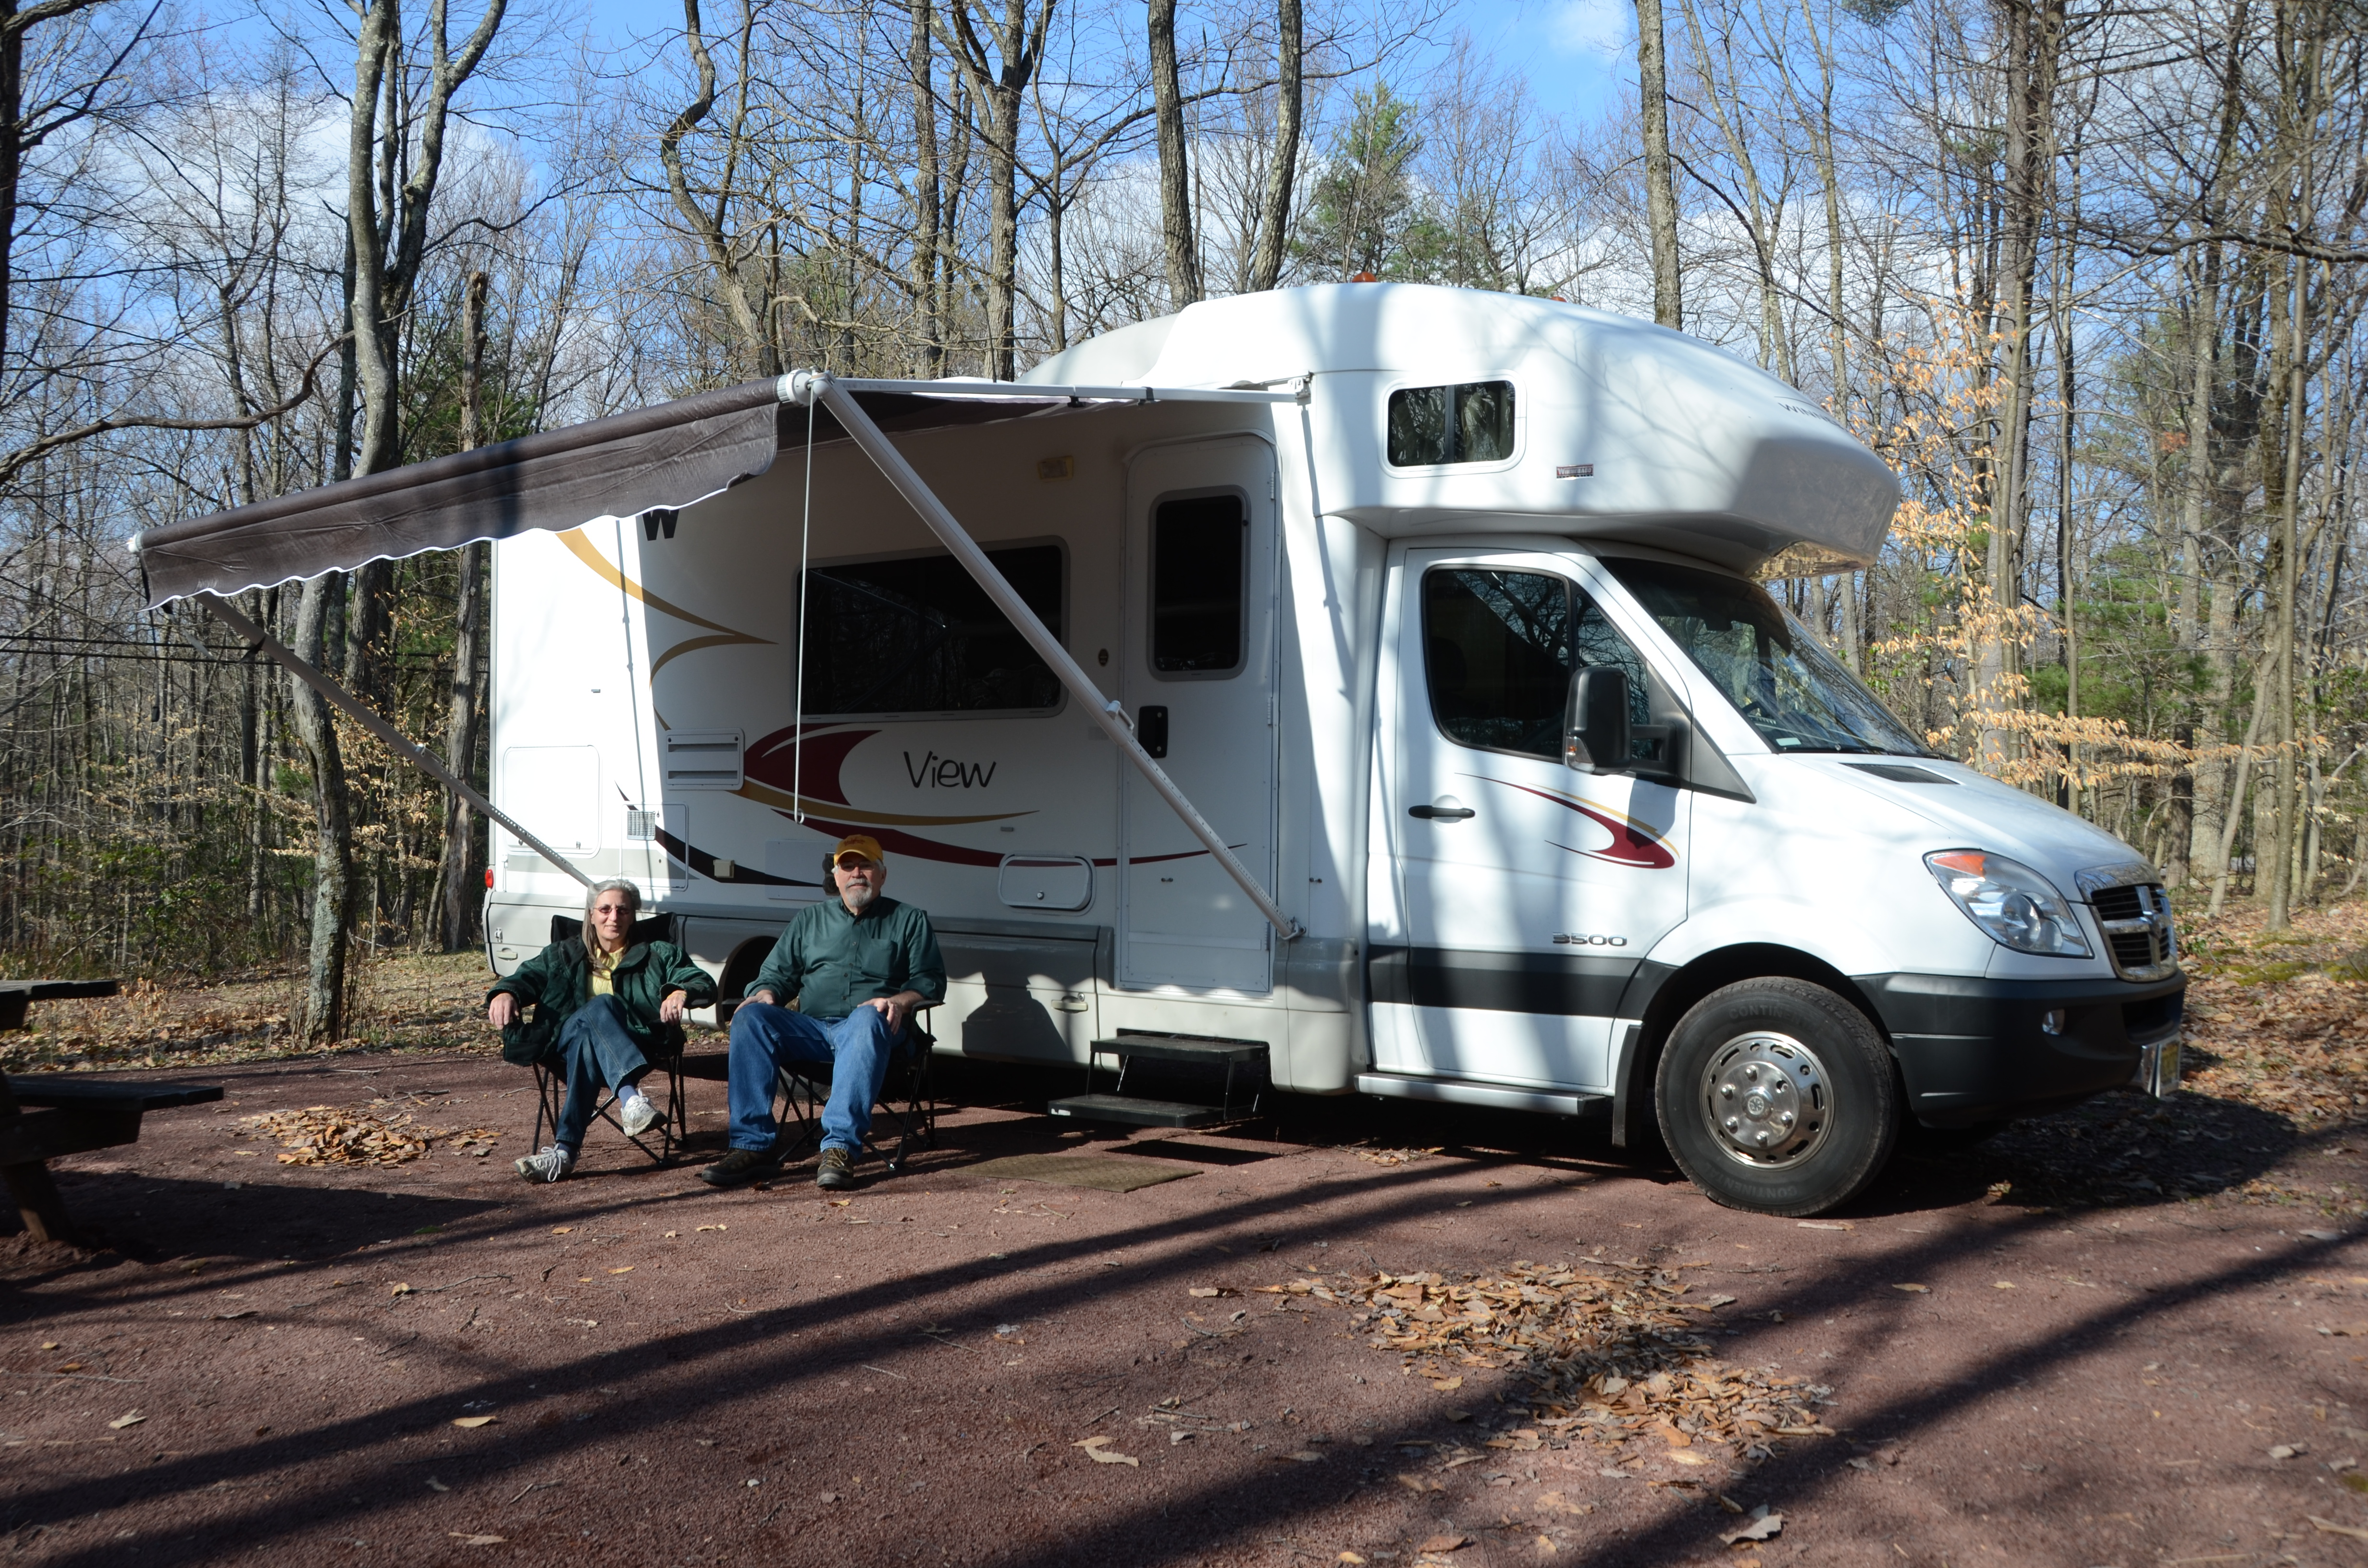 Hickory Run State Park | On the Road with Bob & Louise Kelly